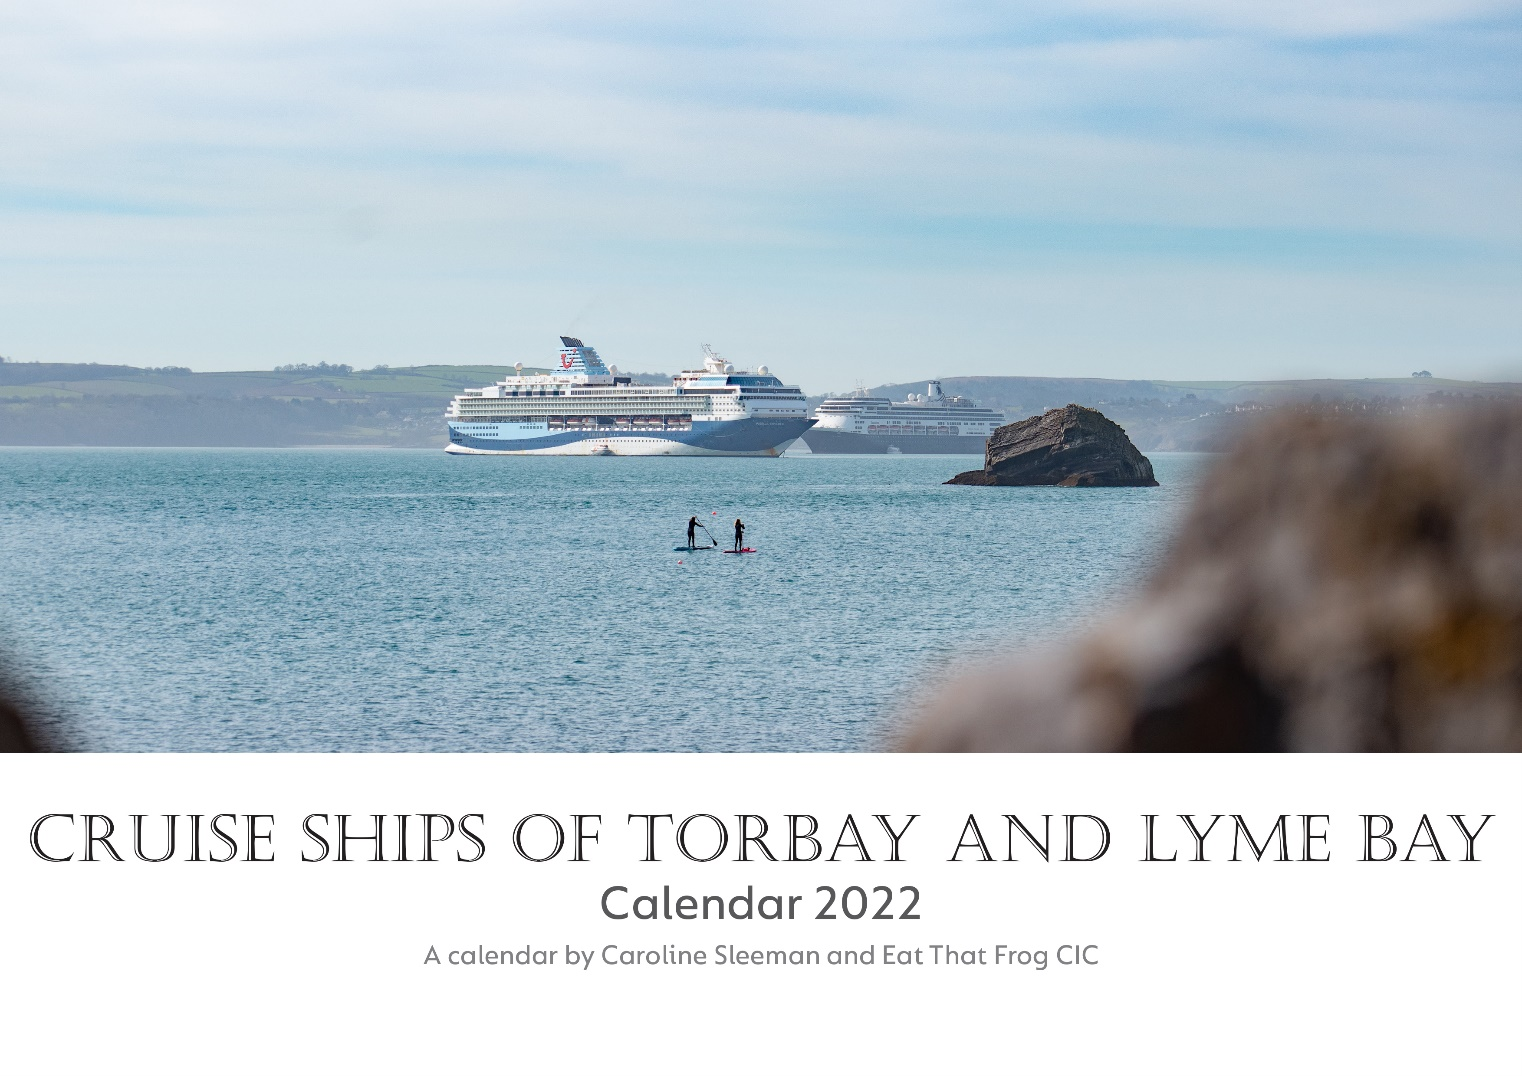 Pre-order Cruise Ships of Torbay and Lyme Bay Calendar 2022